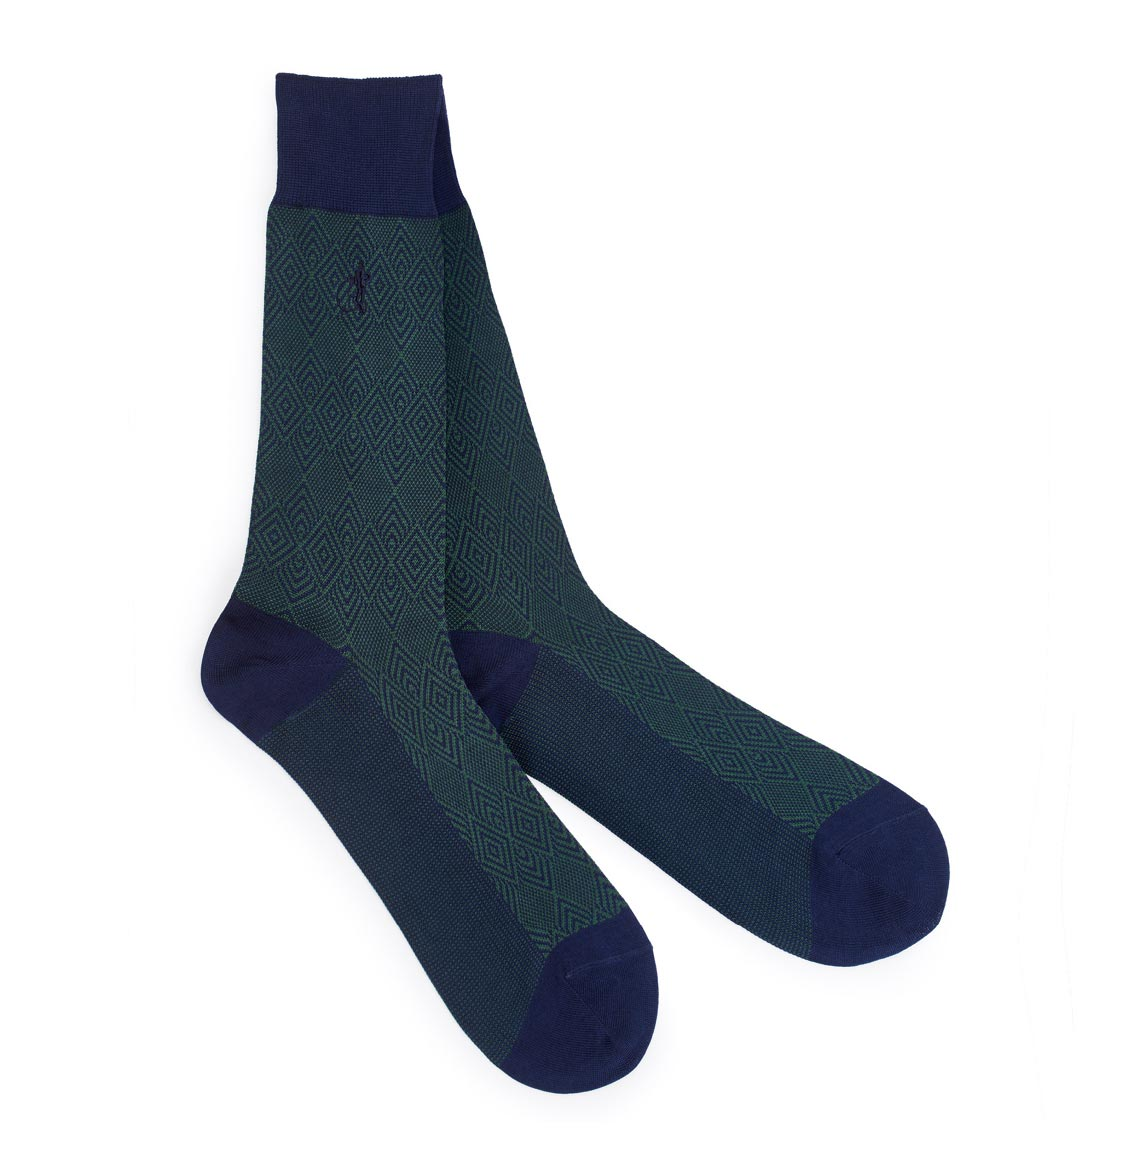 London Sock Co Jacquard Vert